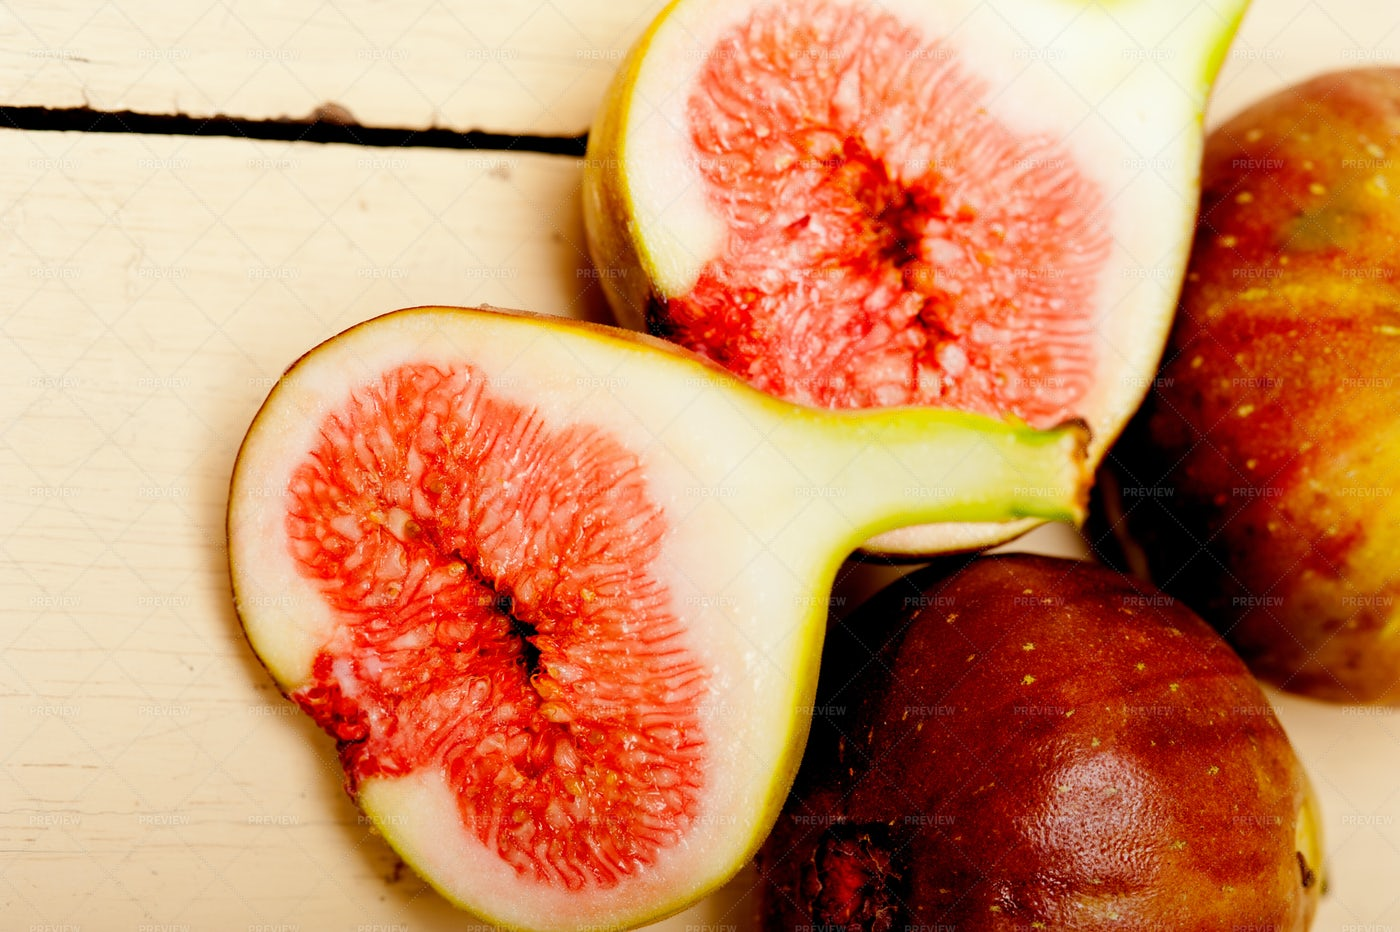 Figs Sliced And Ripe: Stock Photos